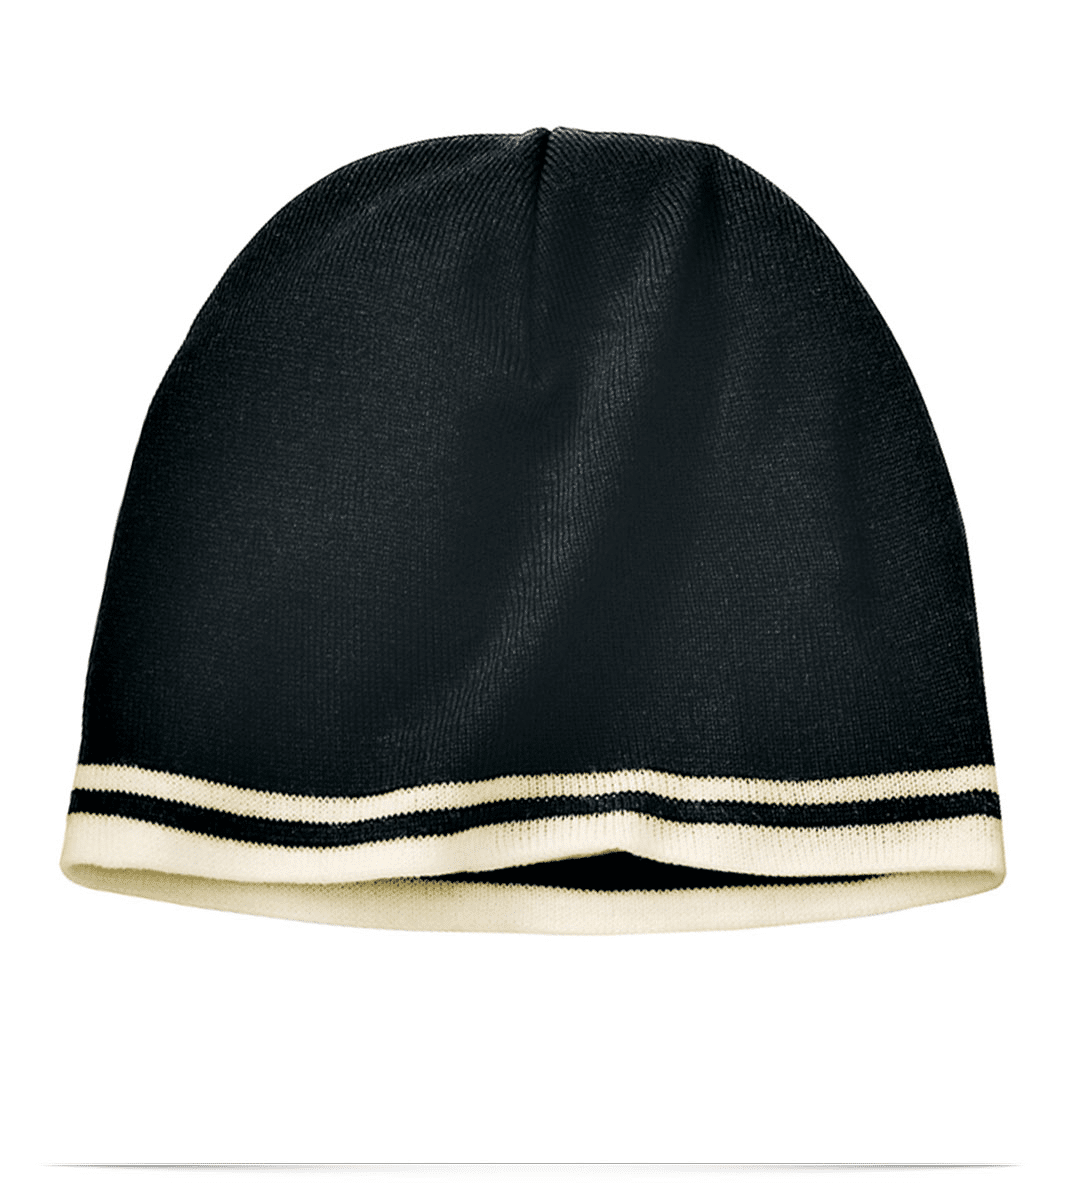 3606aa8750 Embroidered Logo on Personalized Knit Hat with Earflaps